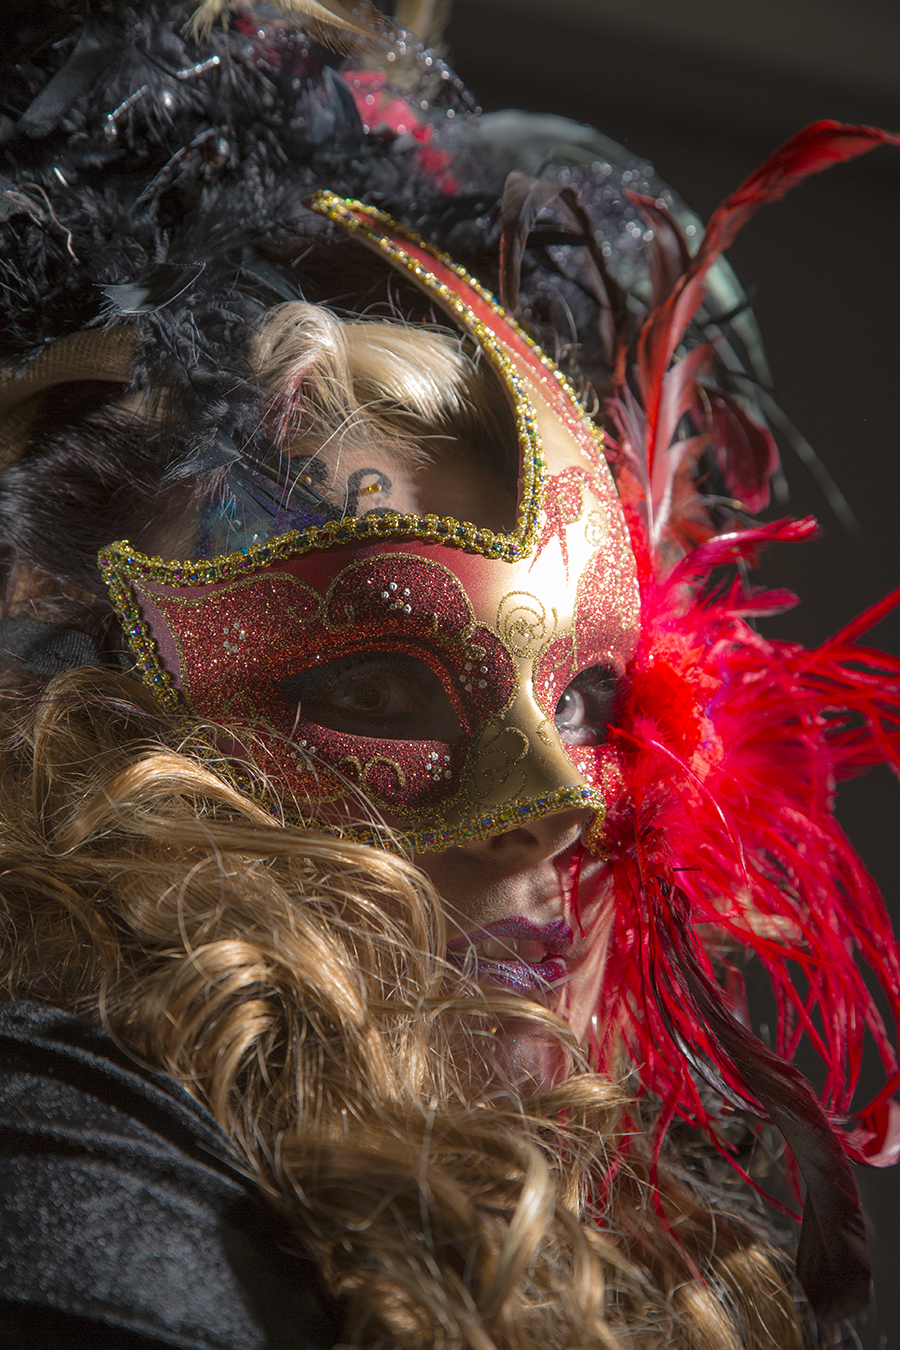 A Fantasy Affair @ Body Couture Studios 3 / Photography by GaryMac Photography / Uploaded 12th May 2013 @ 11:39 PM